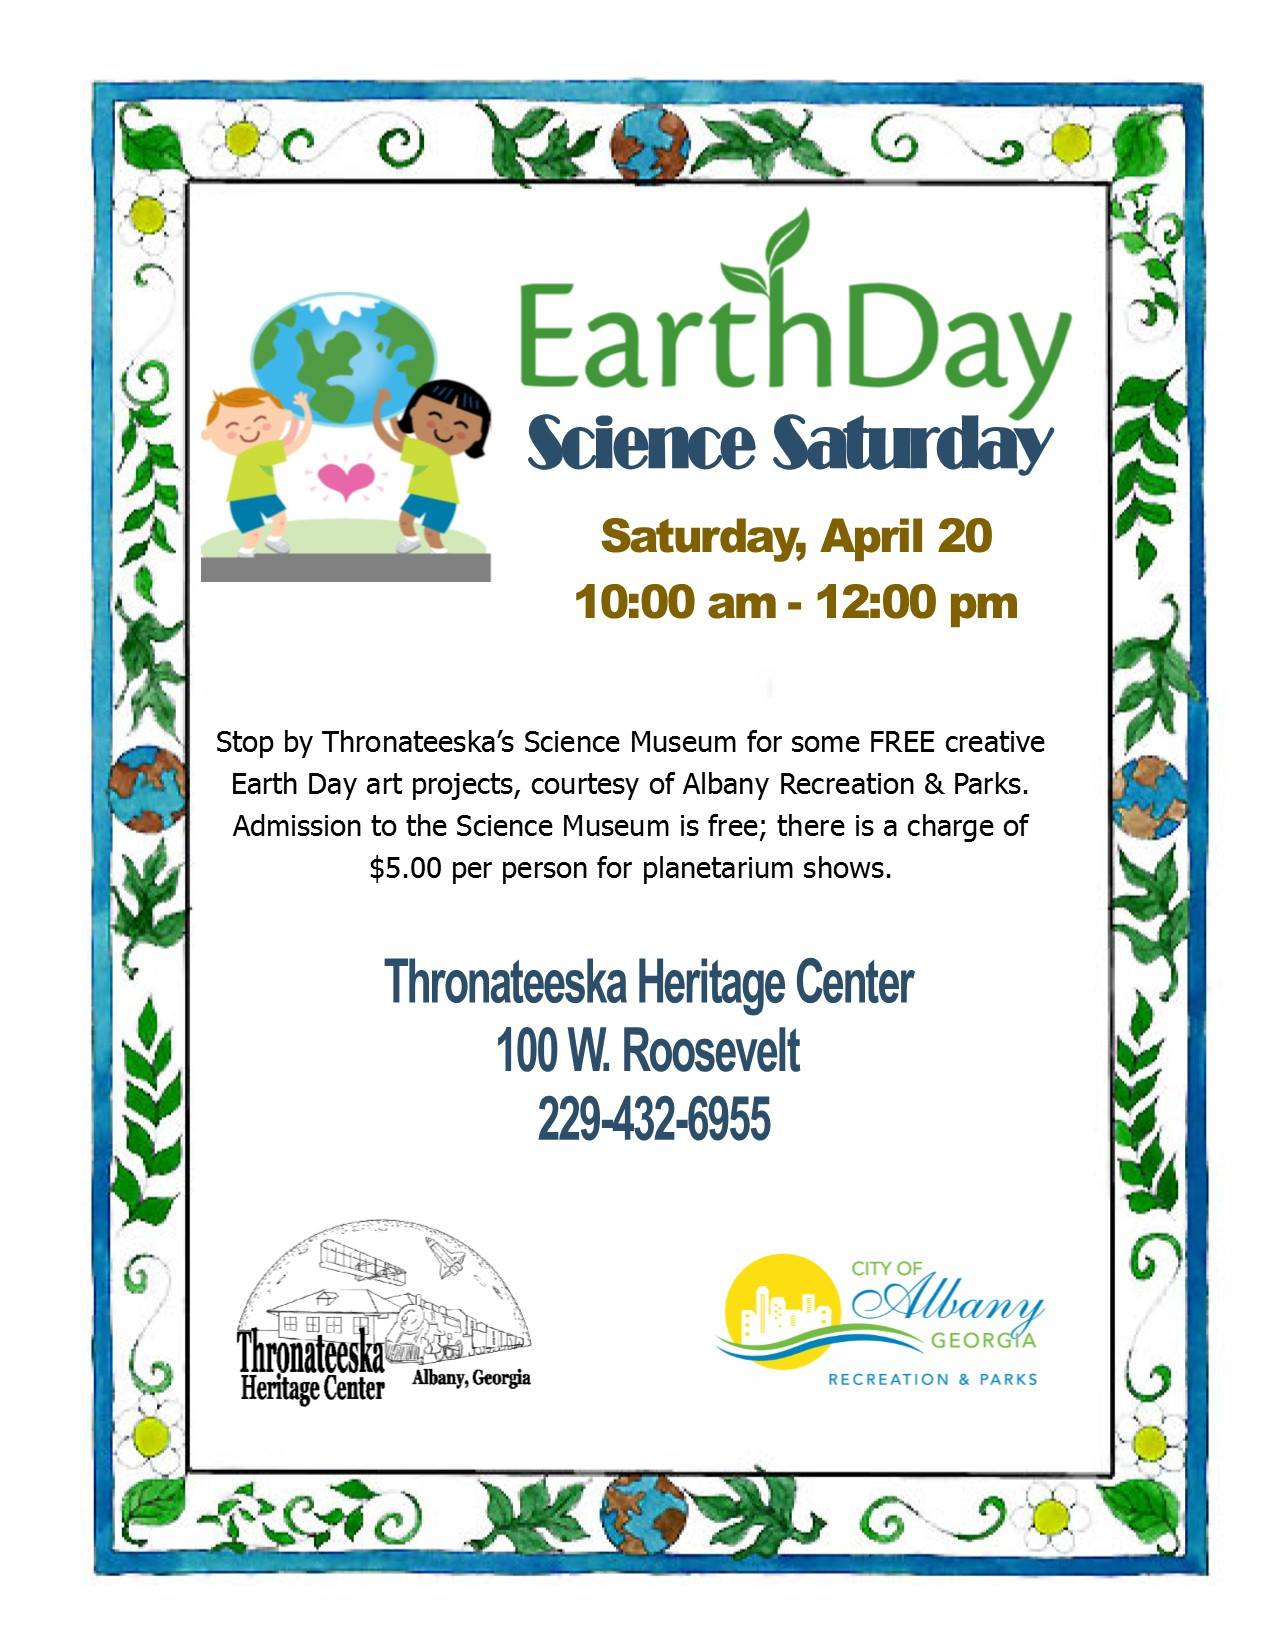 Earth Day Science Saturday